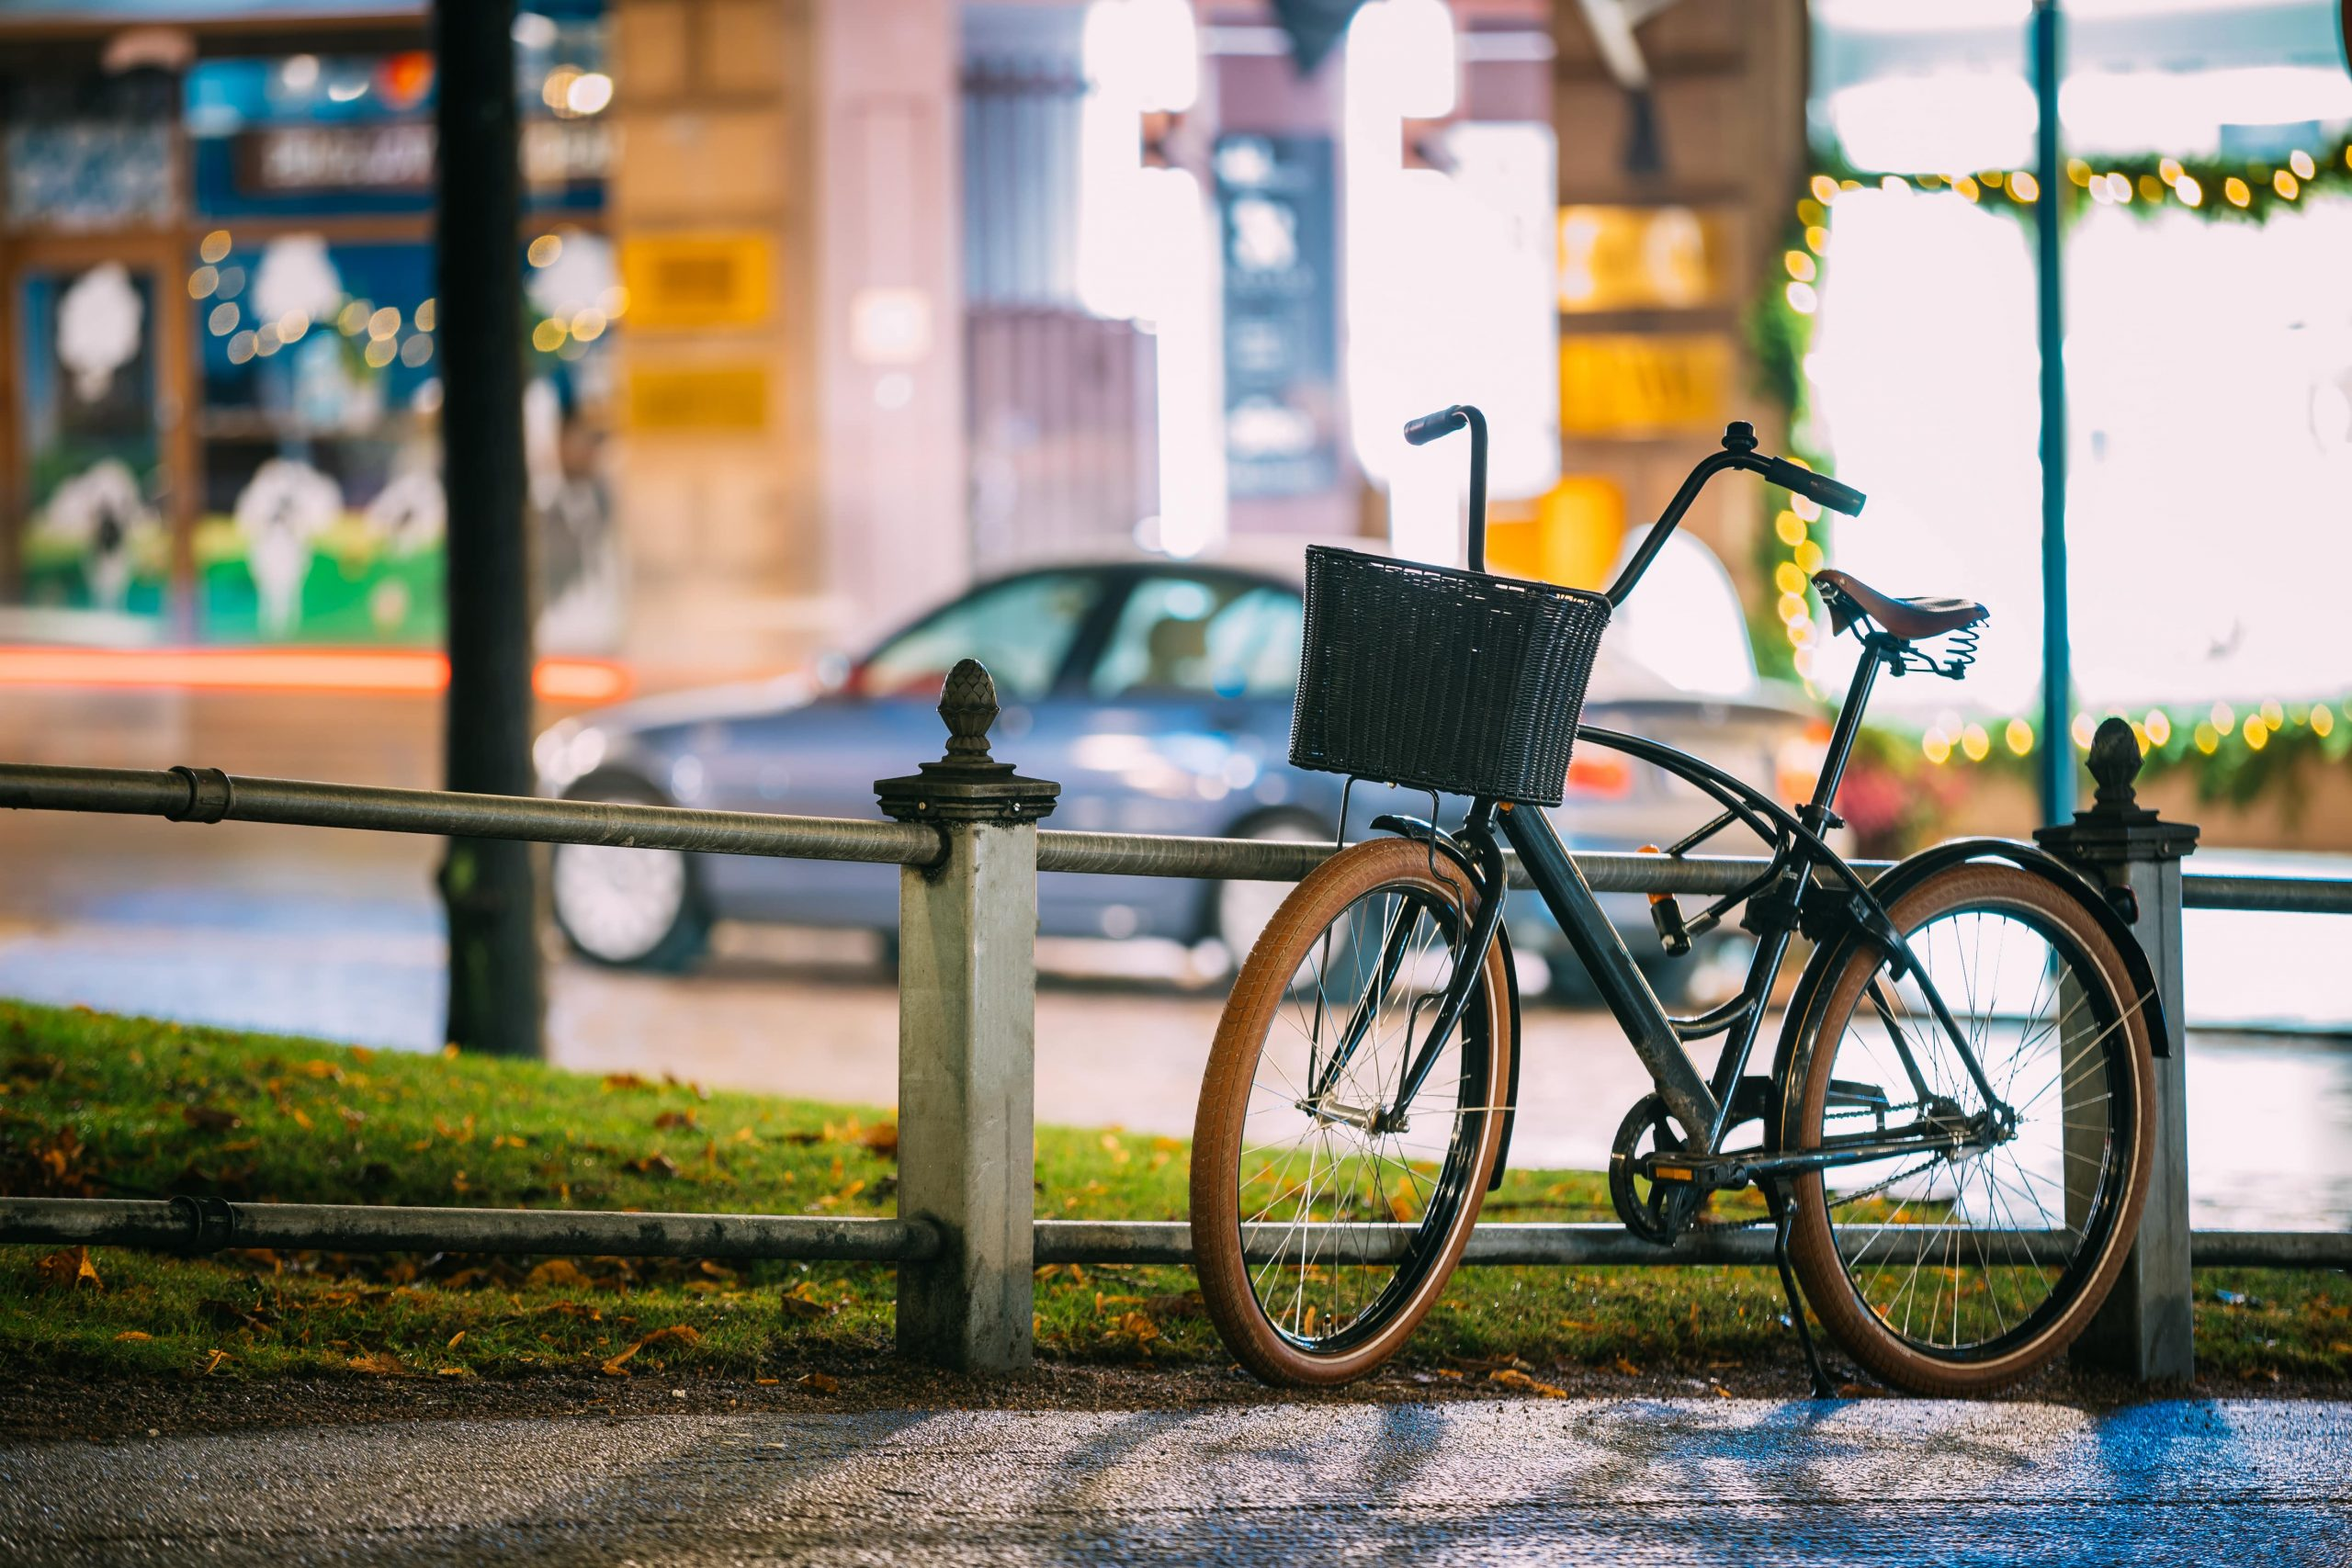 bicycle-equipped-basket-parked-in-european-city-st-PF3RLD3